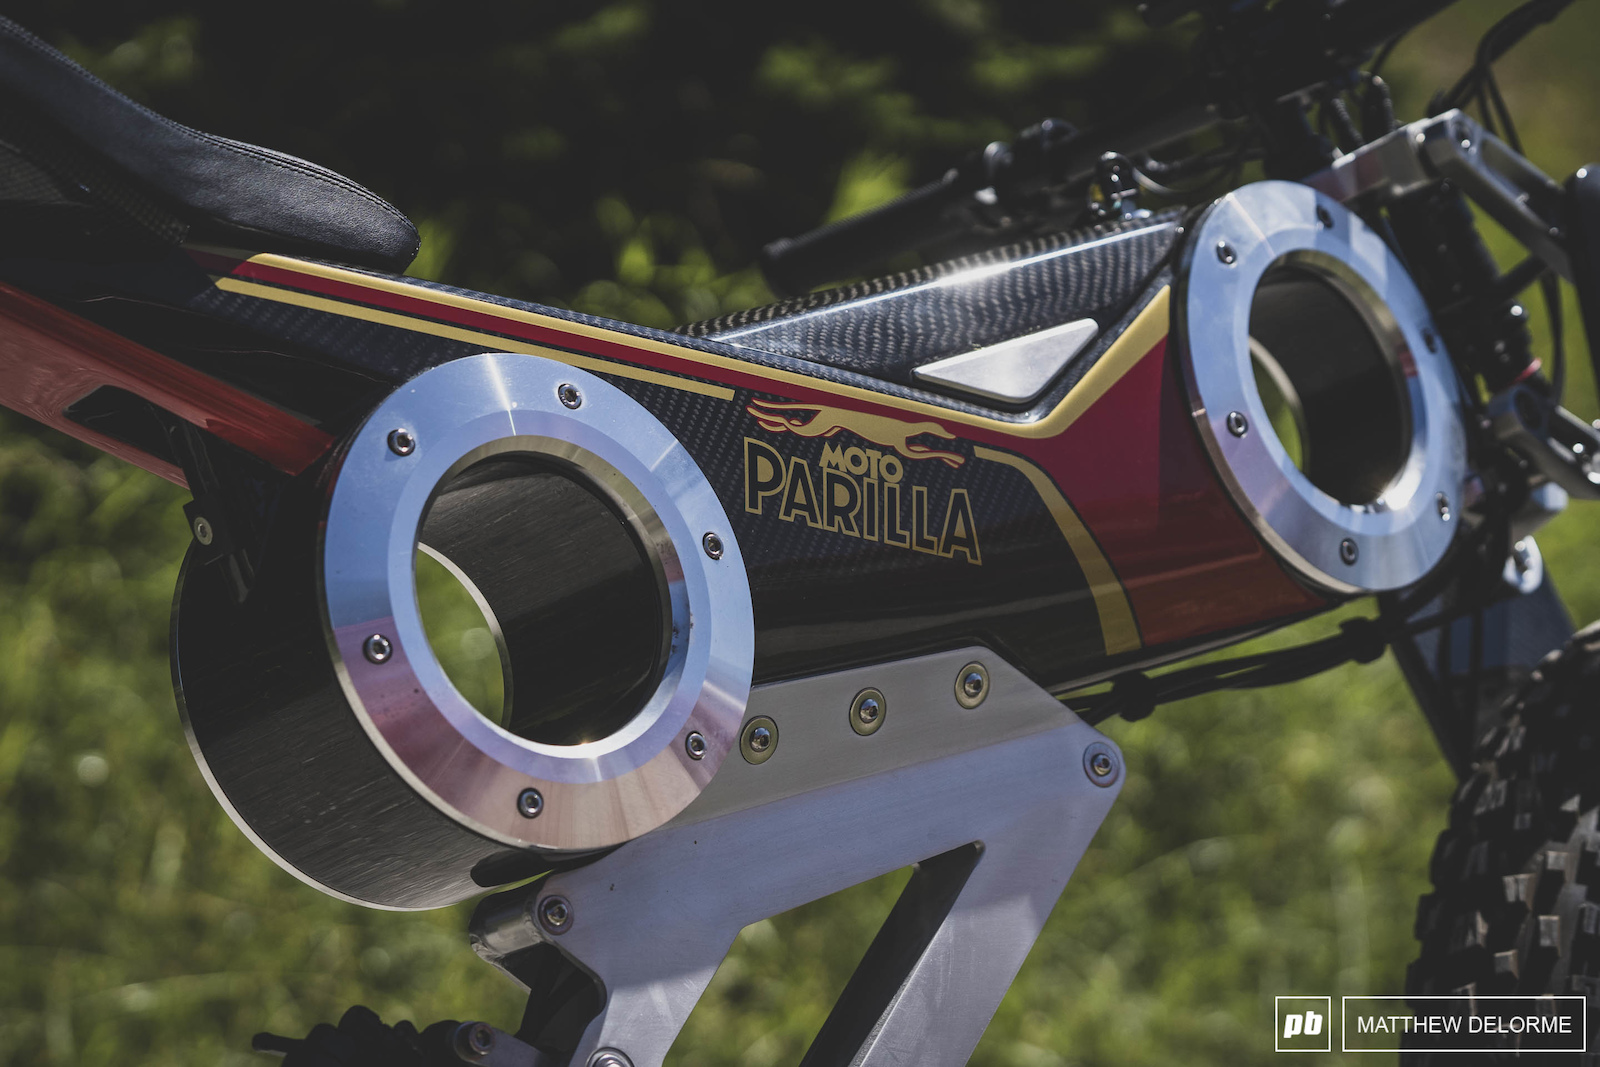 Some Crazy details on the Moto Parilla.